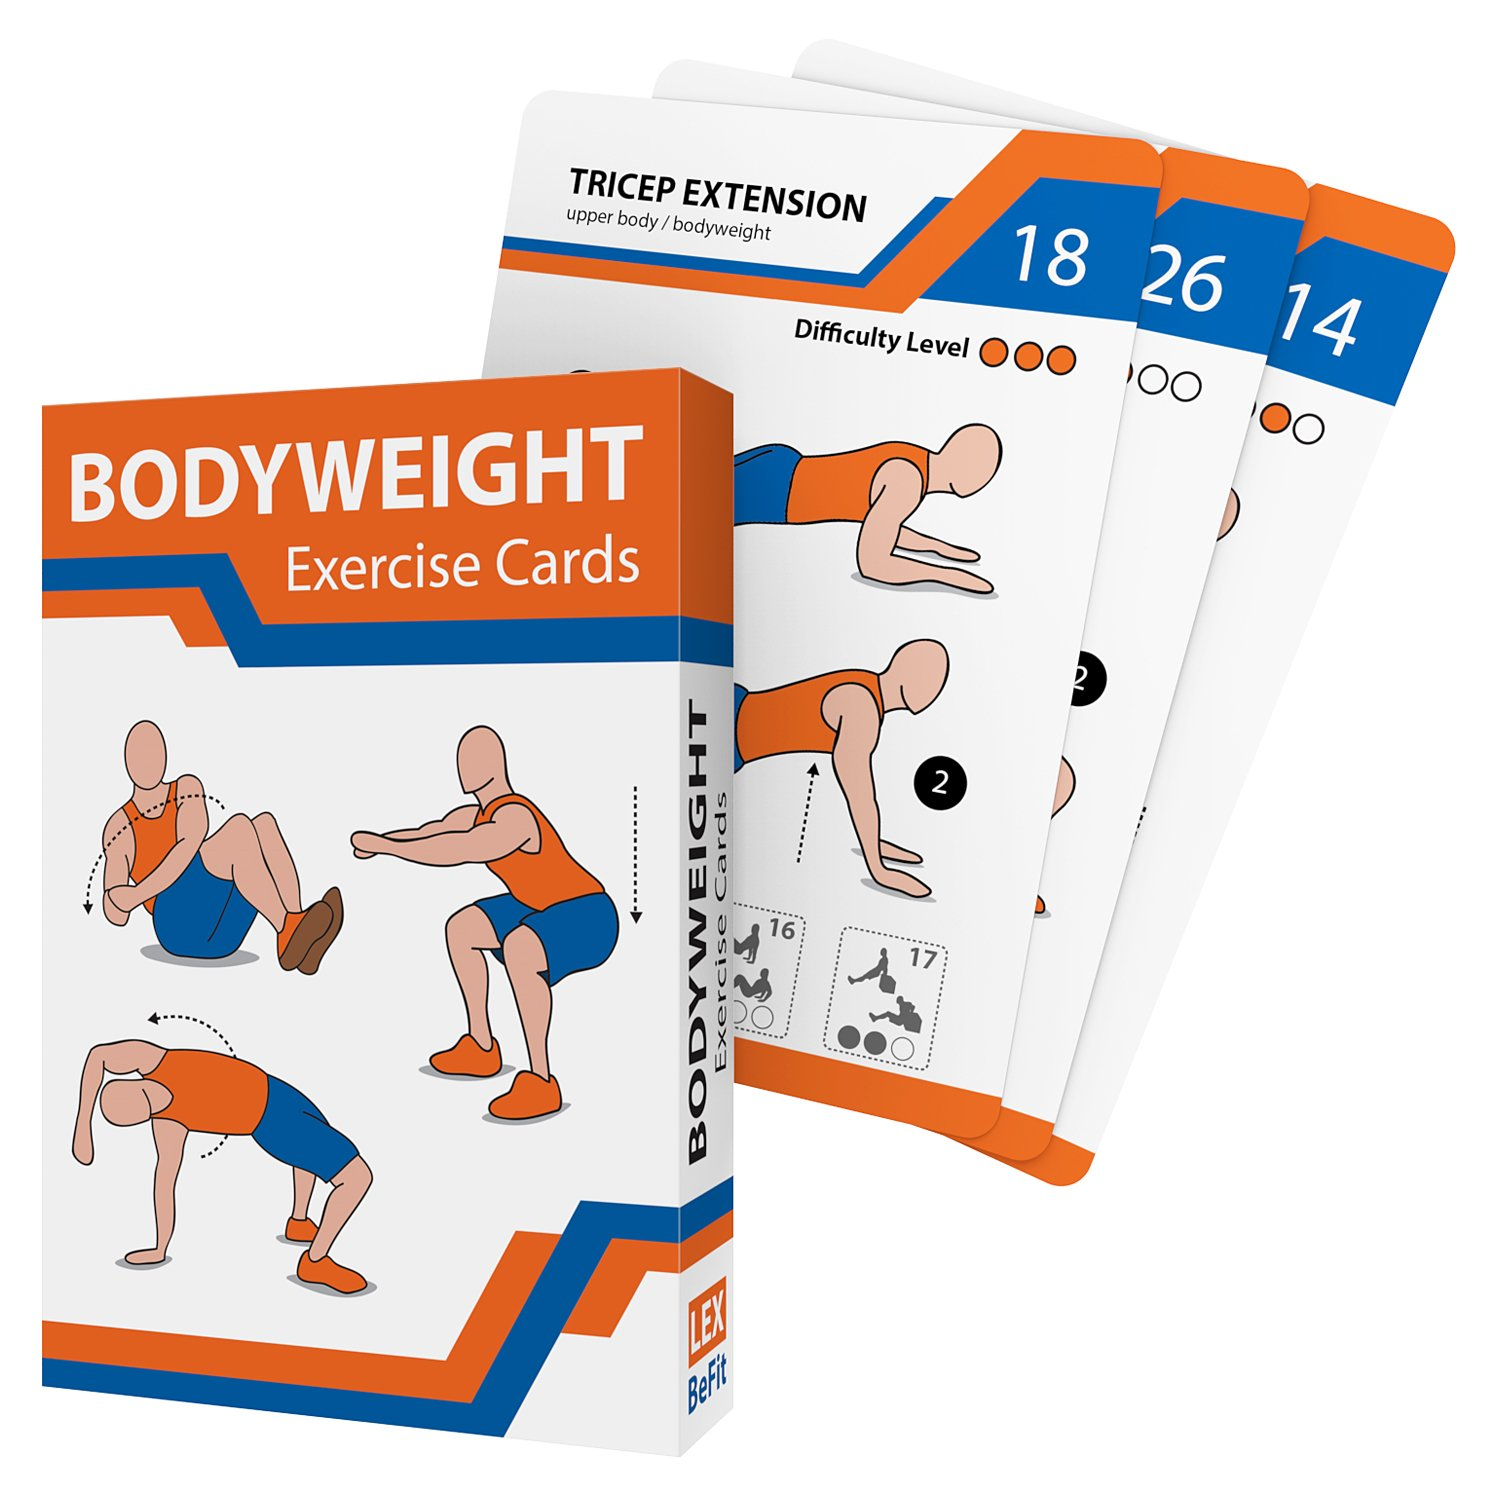 Exercise Cards - 55 Premium Bodyweight Exercises - Best Workout Guide - Complete Home Gym for Men and Women Functional Training Chest Abs Legs - Video Instructions Included